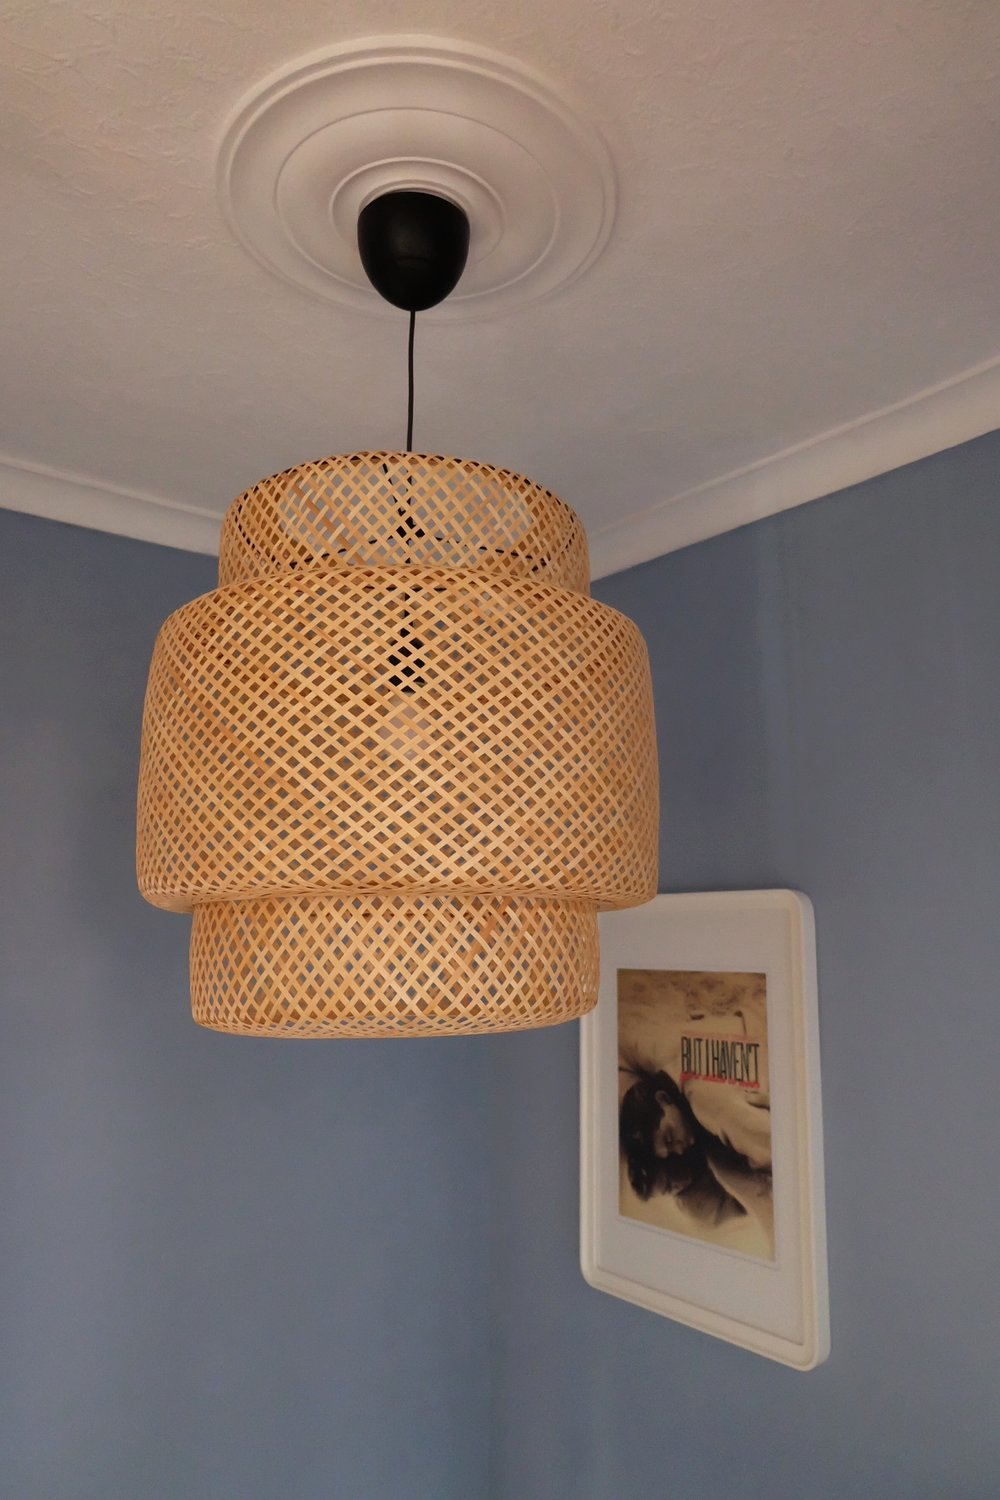 Ikea Ilse Crawford rattan light